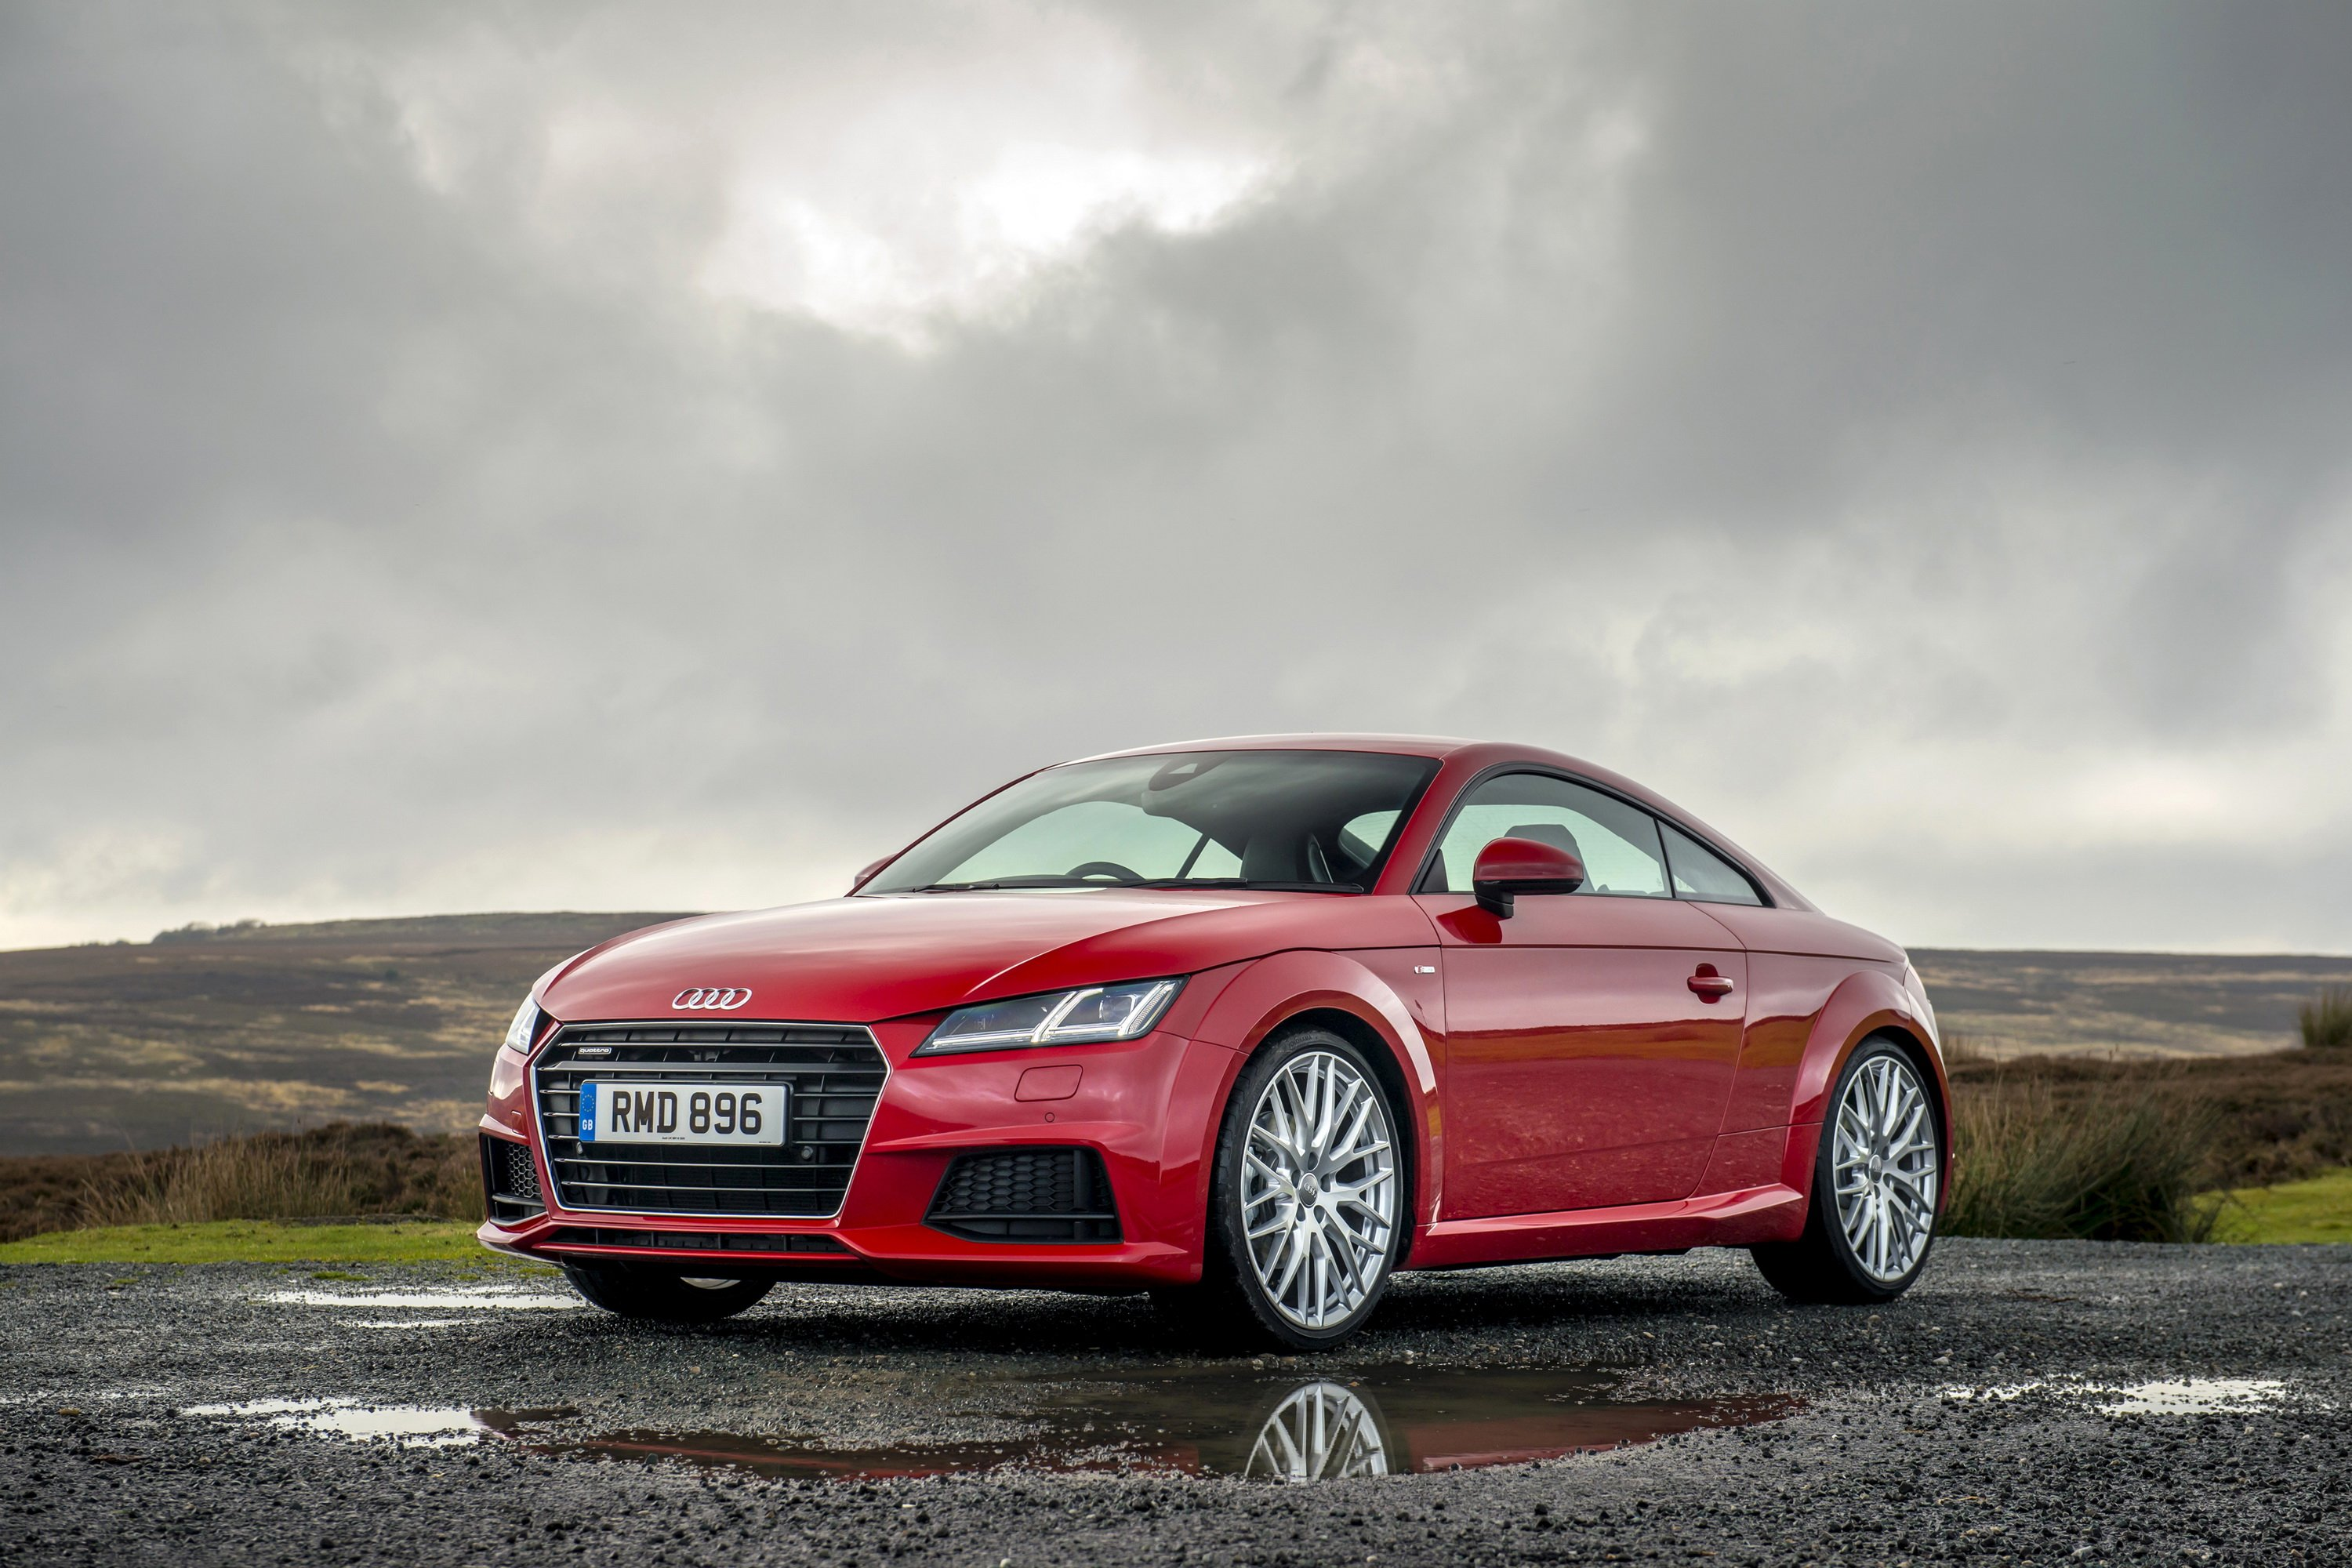 2015 audi tt wallpaper hd 47397